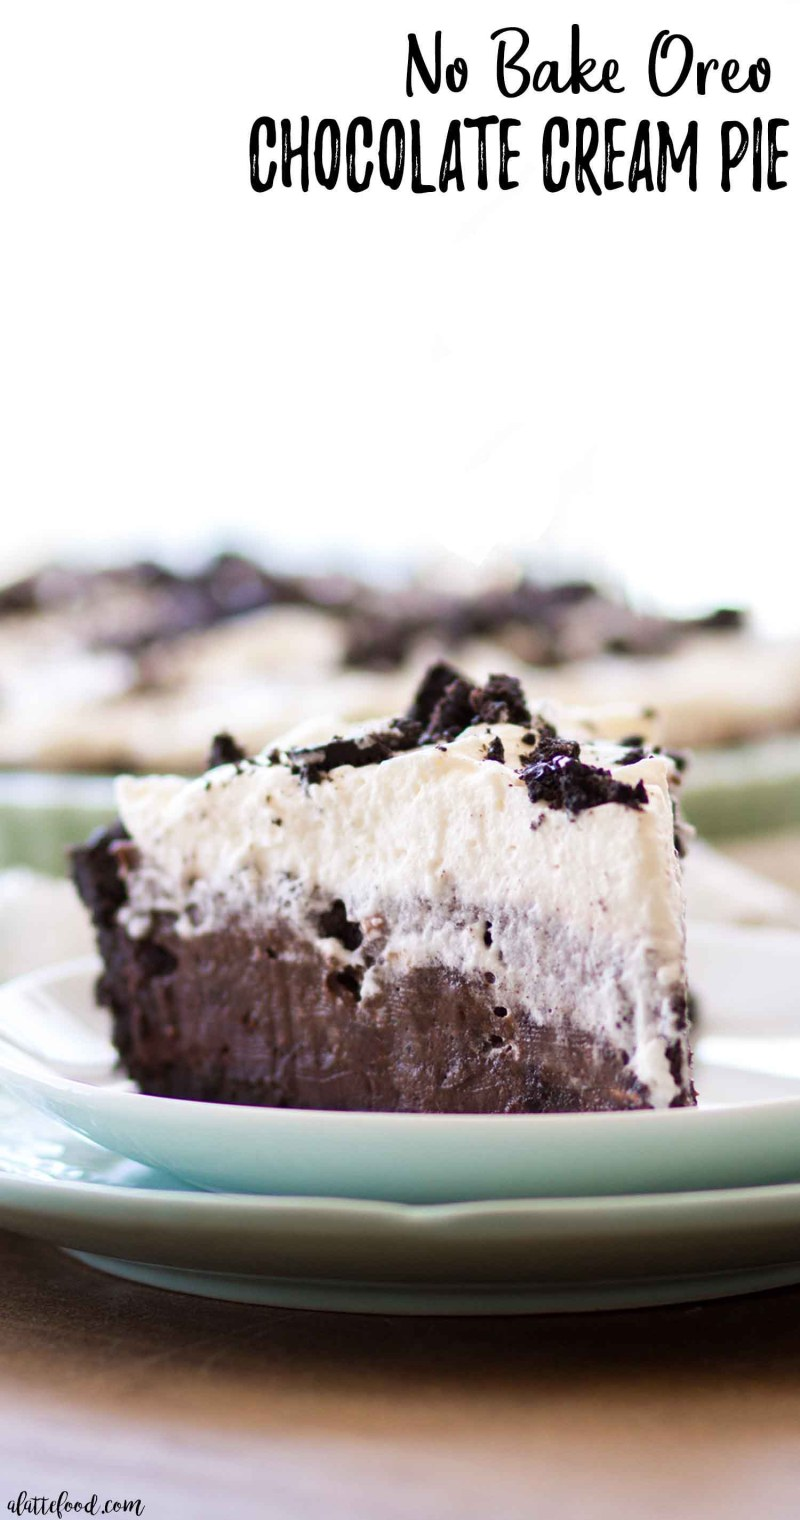 This No Bake Oreo Chocolate Cream Pie begins with a homemade oreo crust, has a layer of rich chocolate ganache, a layer of dreamy chocolate cream pie, and finally homemade whipped cream on top. It's rich, ultra-decadent, and such an easy no bake dessert!